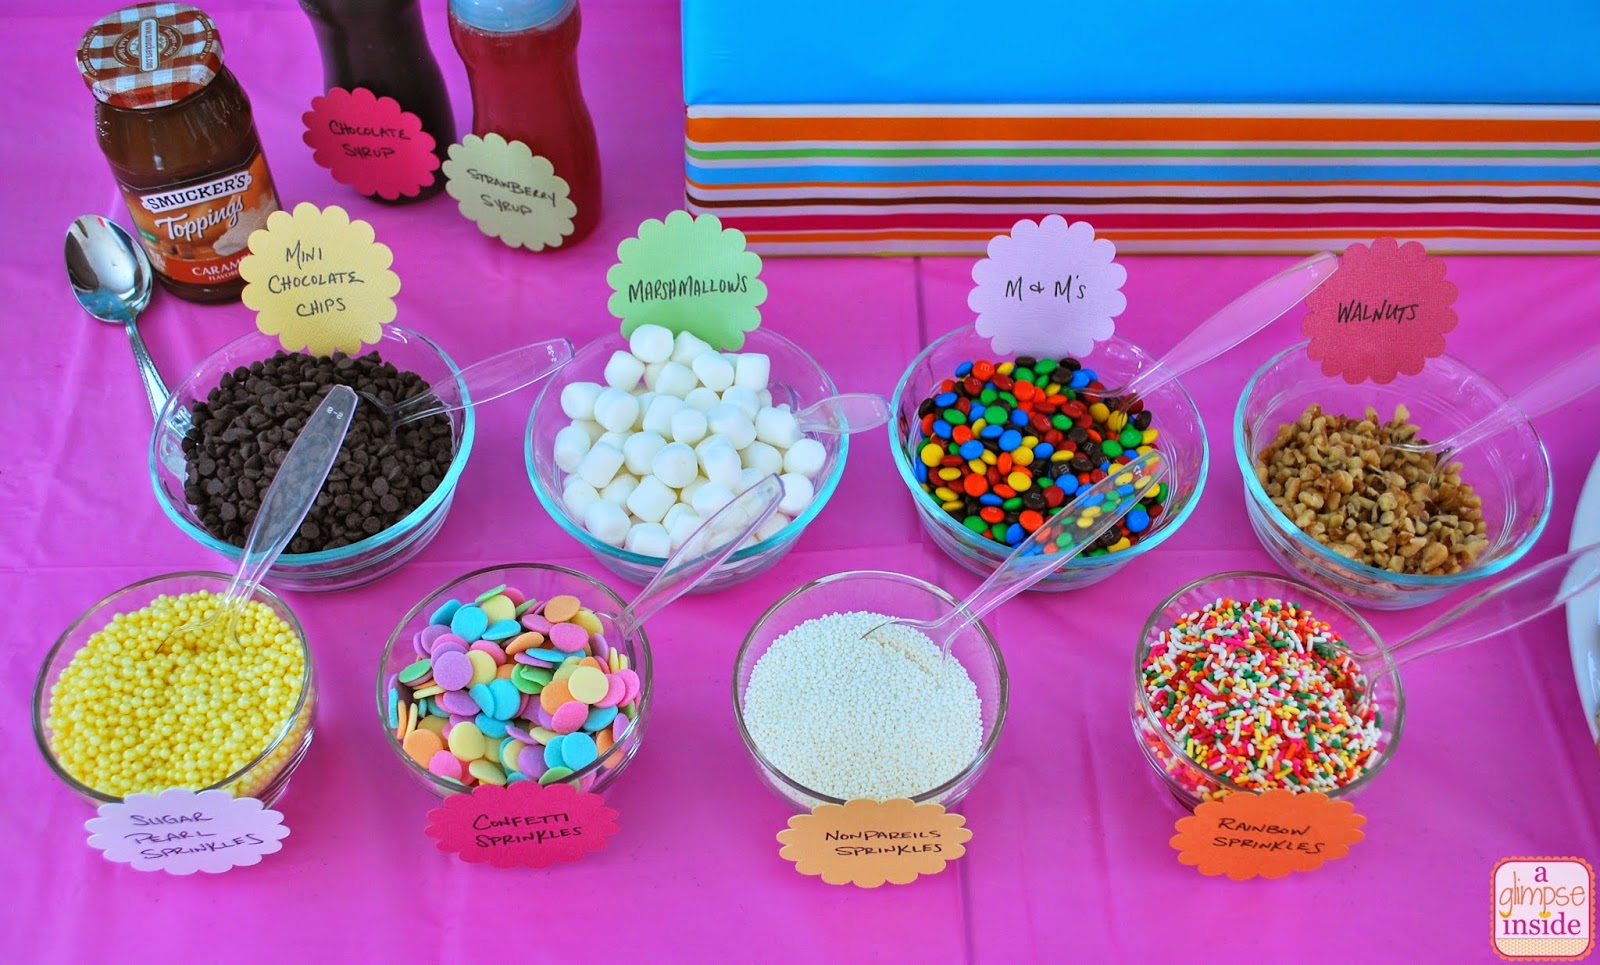 Ice Cream Birthday Party Decorations A Glimpse Inside